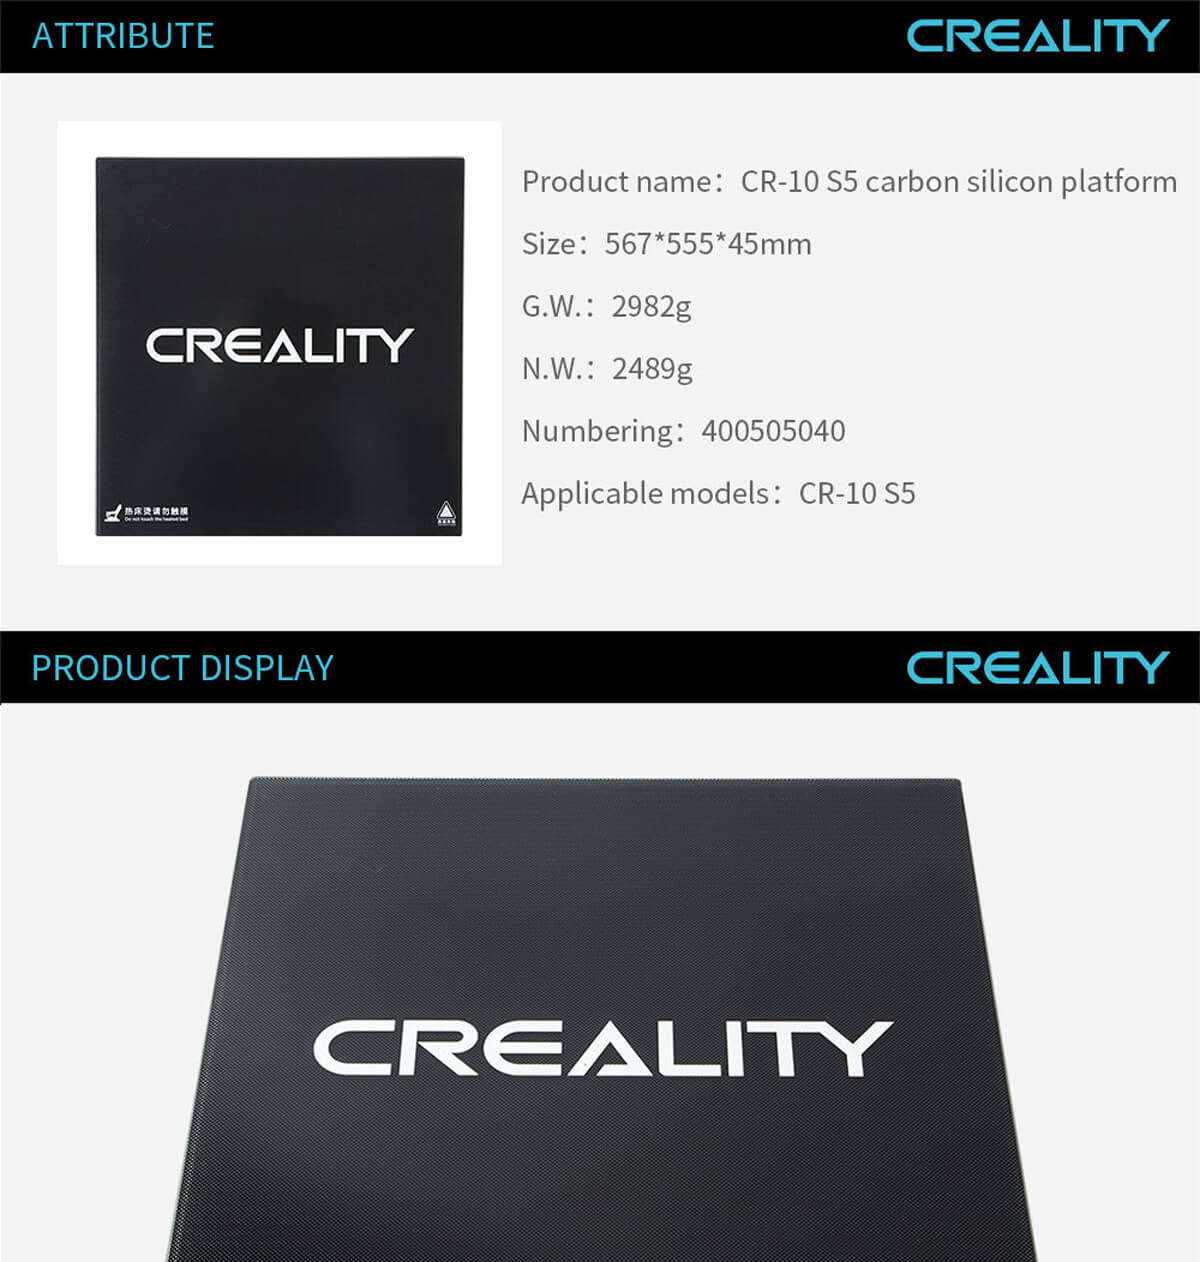 creality-3d-printer-CR-10-S5-Carbon-Silicon-Platform-11